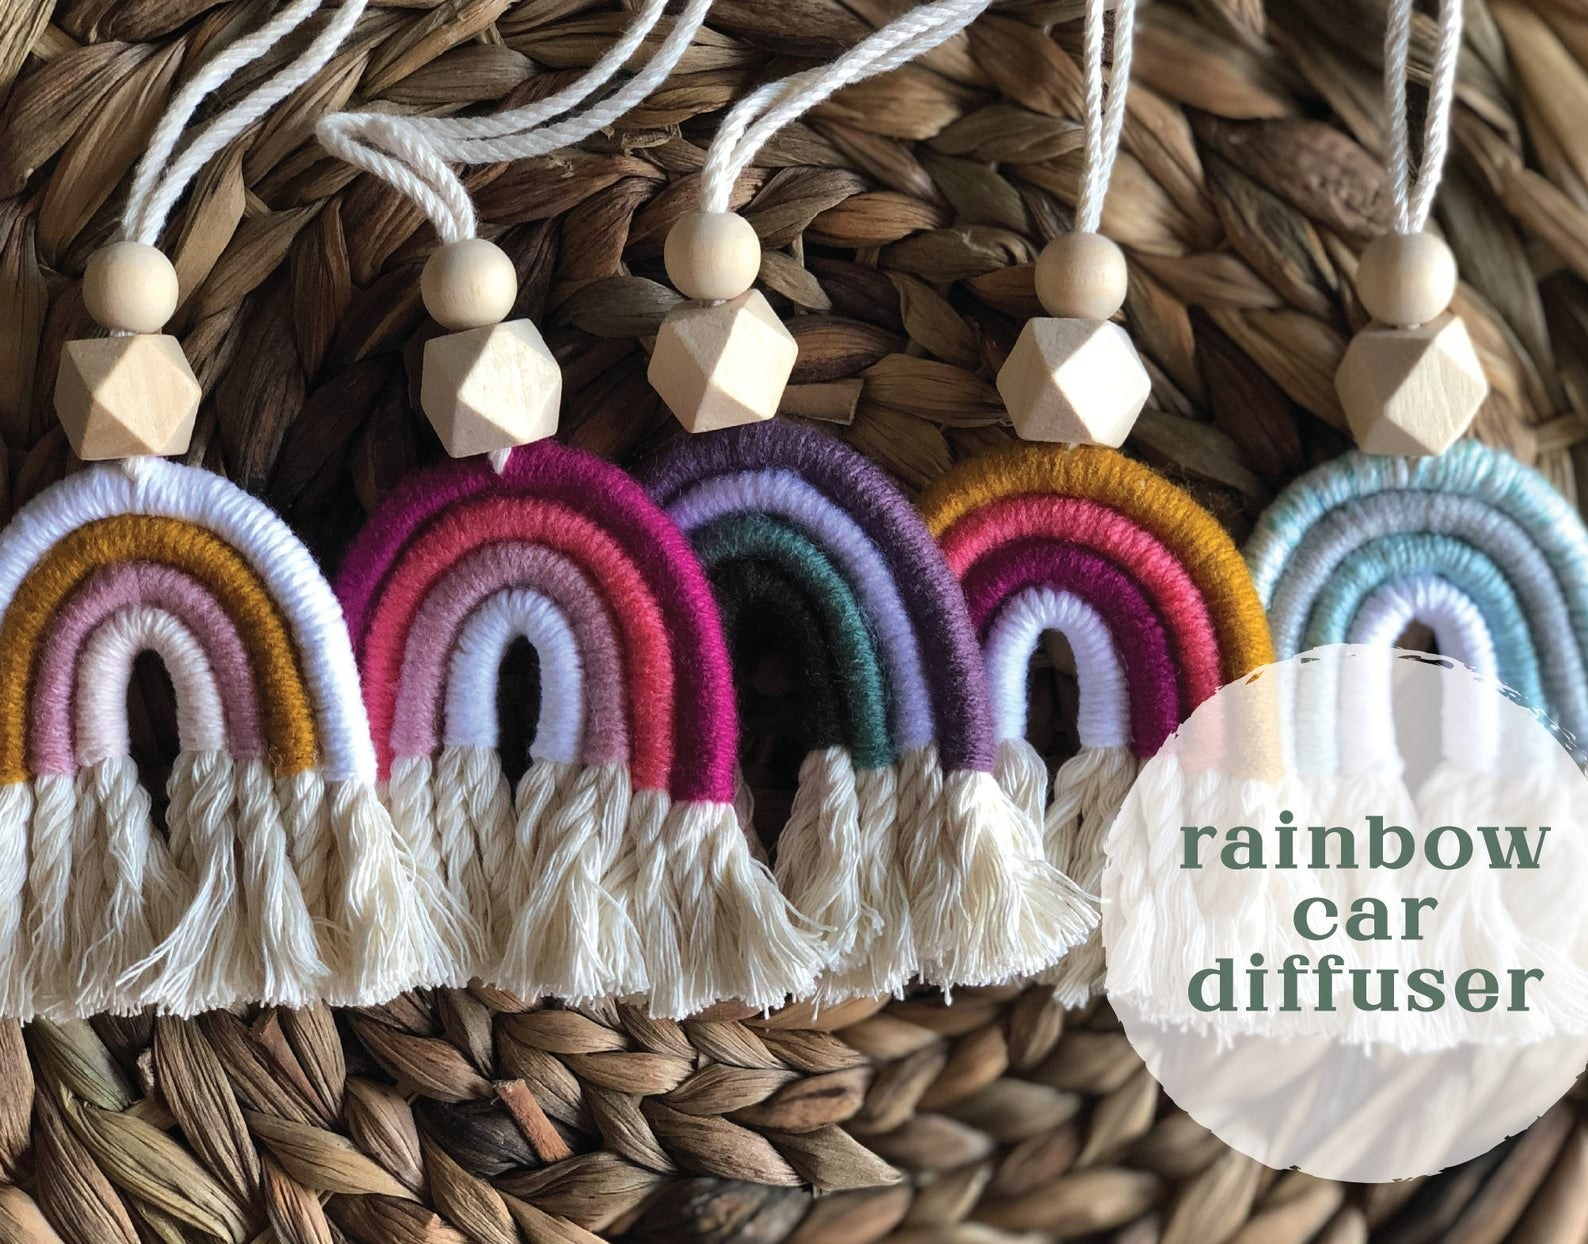 Five rainbow car diffusers in various colors